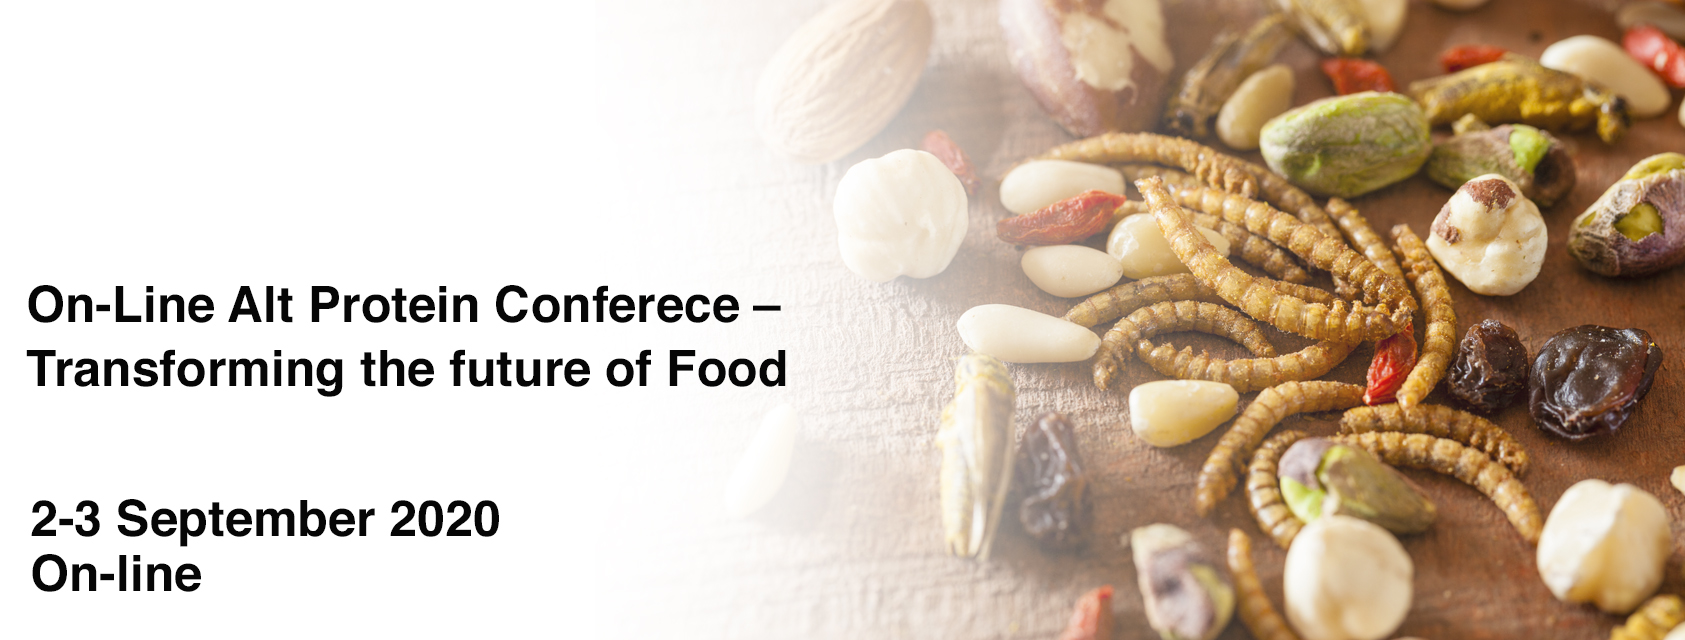 On-Line Alt Protein Conferece – Transforming the future of Food